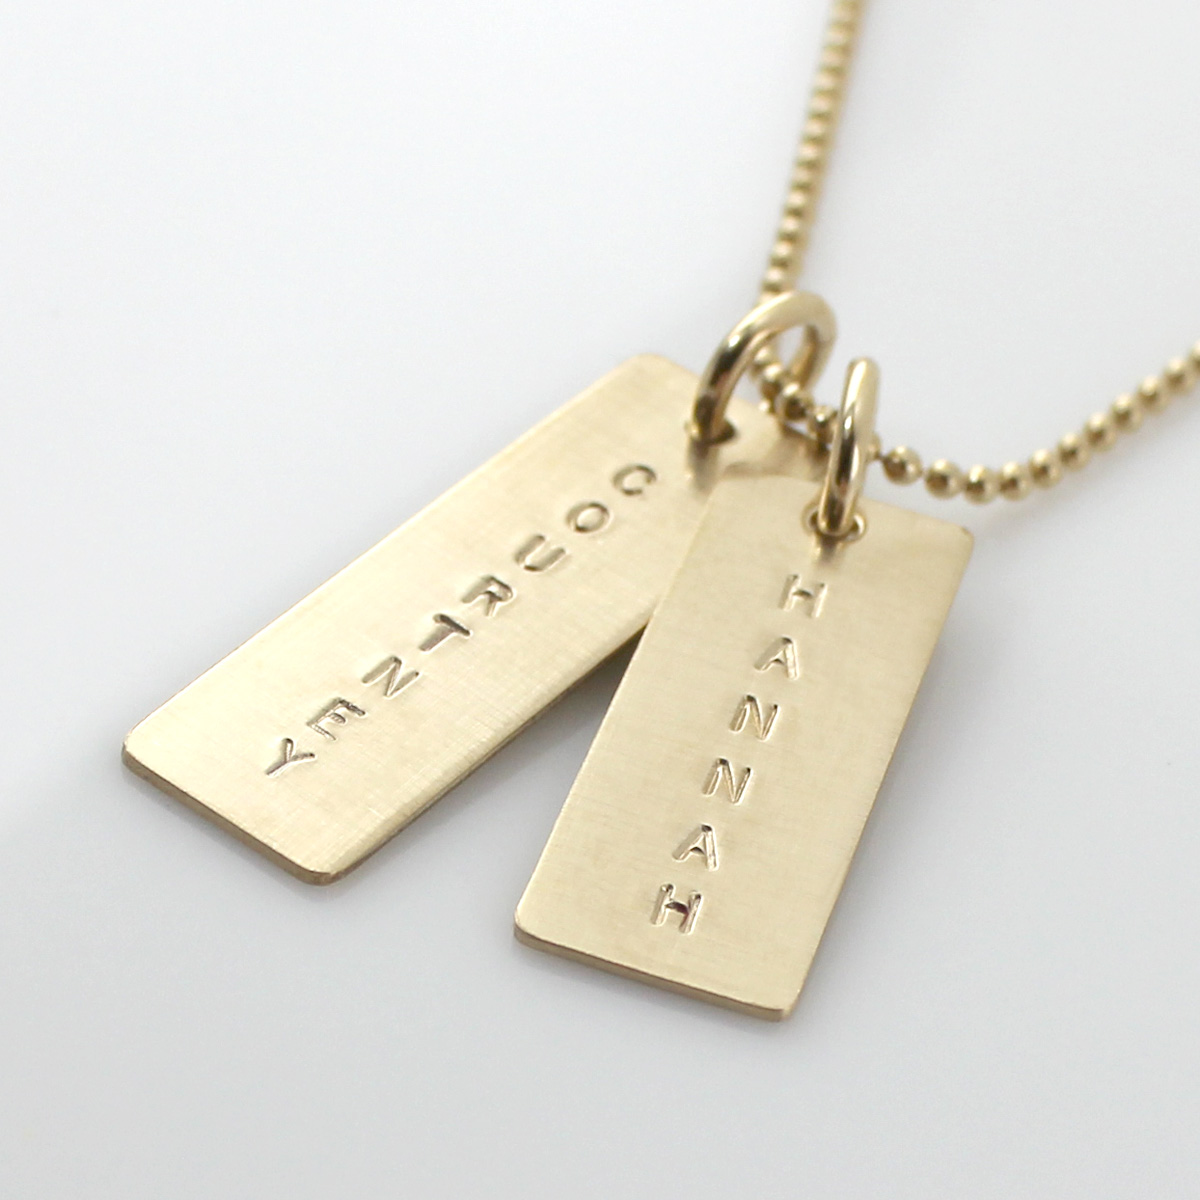 Simple Name Tag Necklace - Gold Filled - one long one short